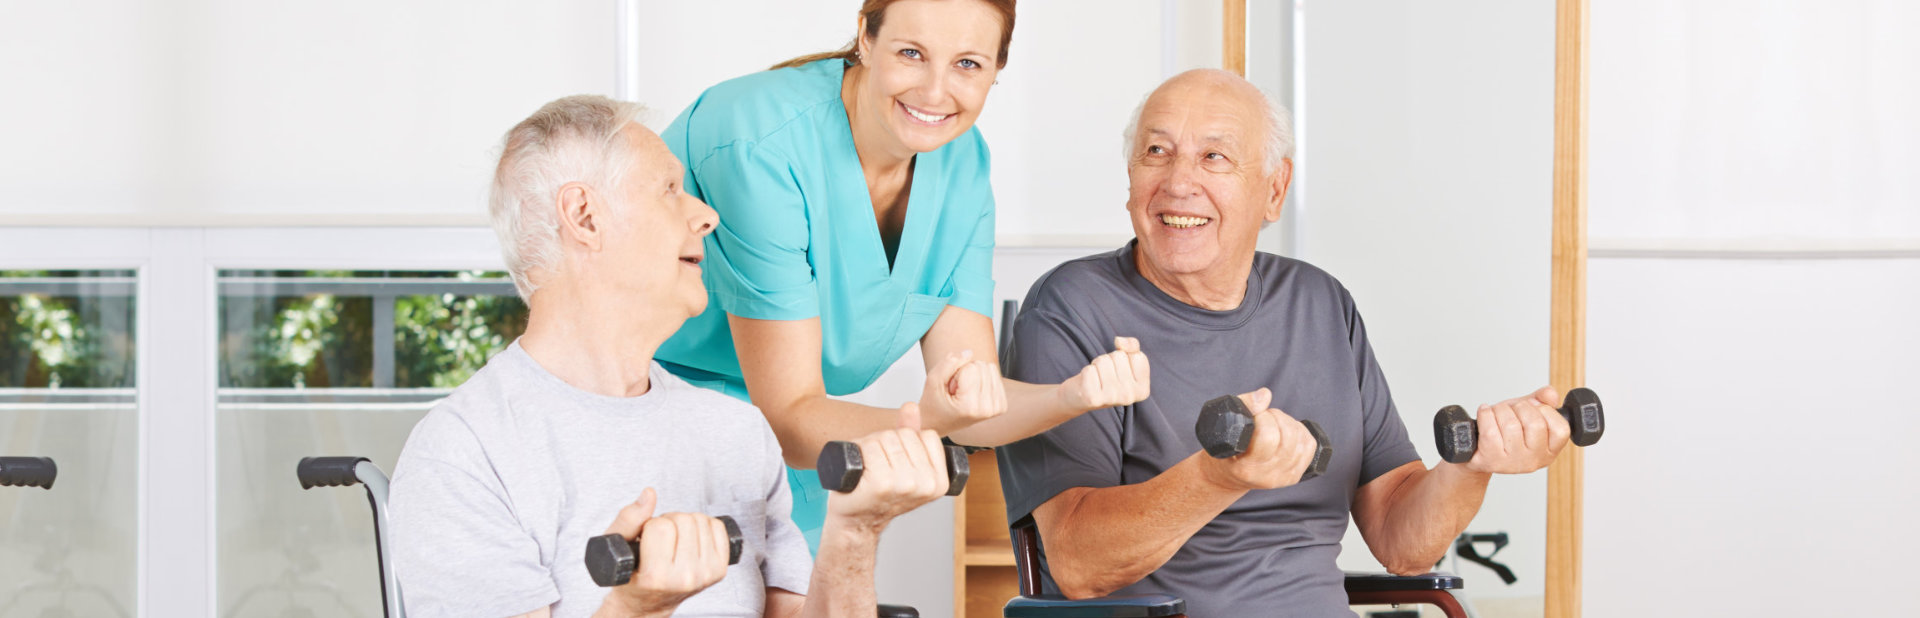 caregiver assisting old men exercising